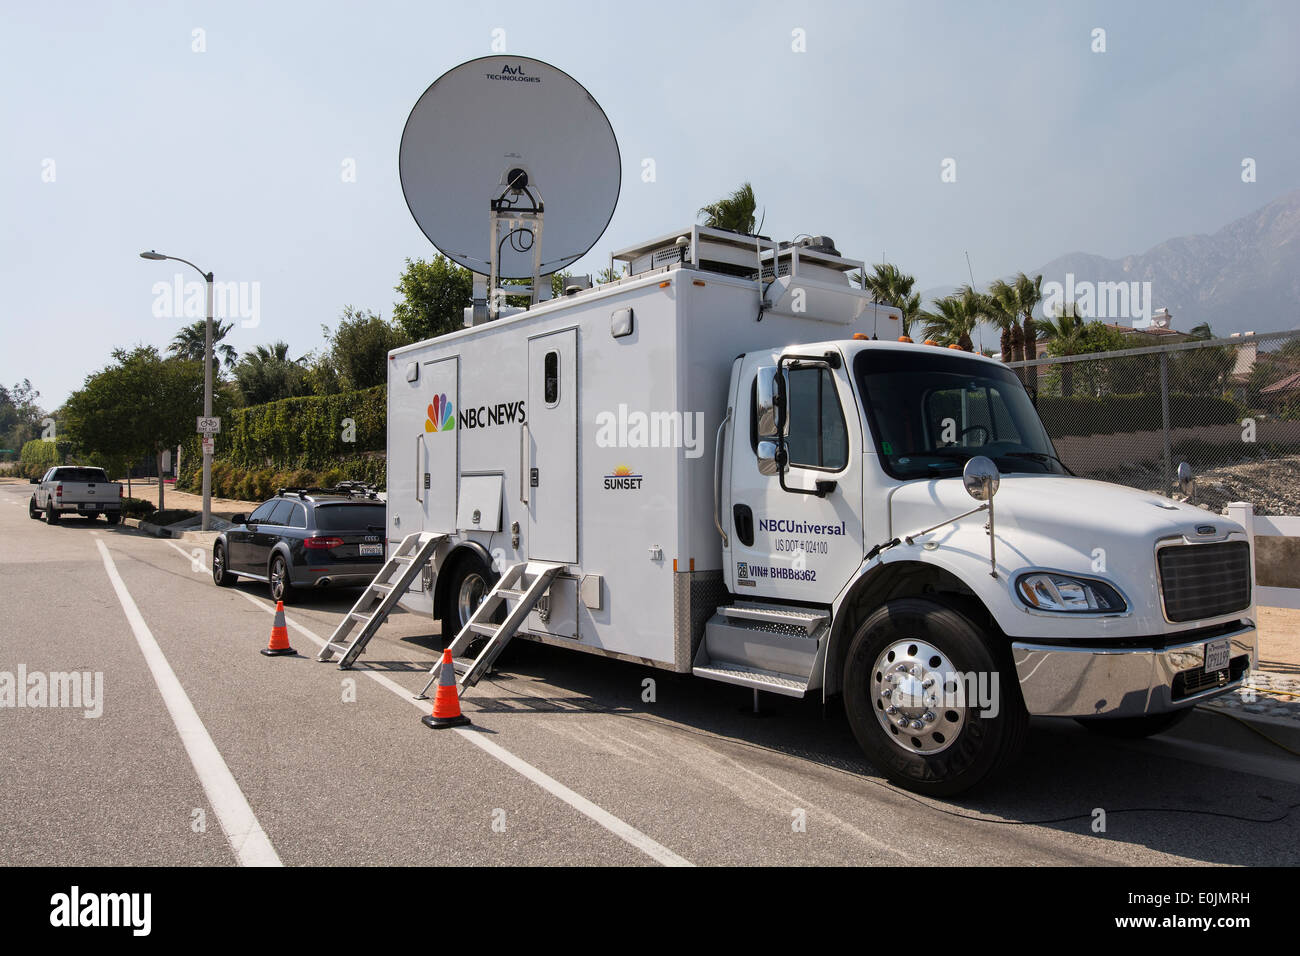 NBC new van at the scene of a fire, Rancho Cucamonga, California - Stock Image